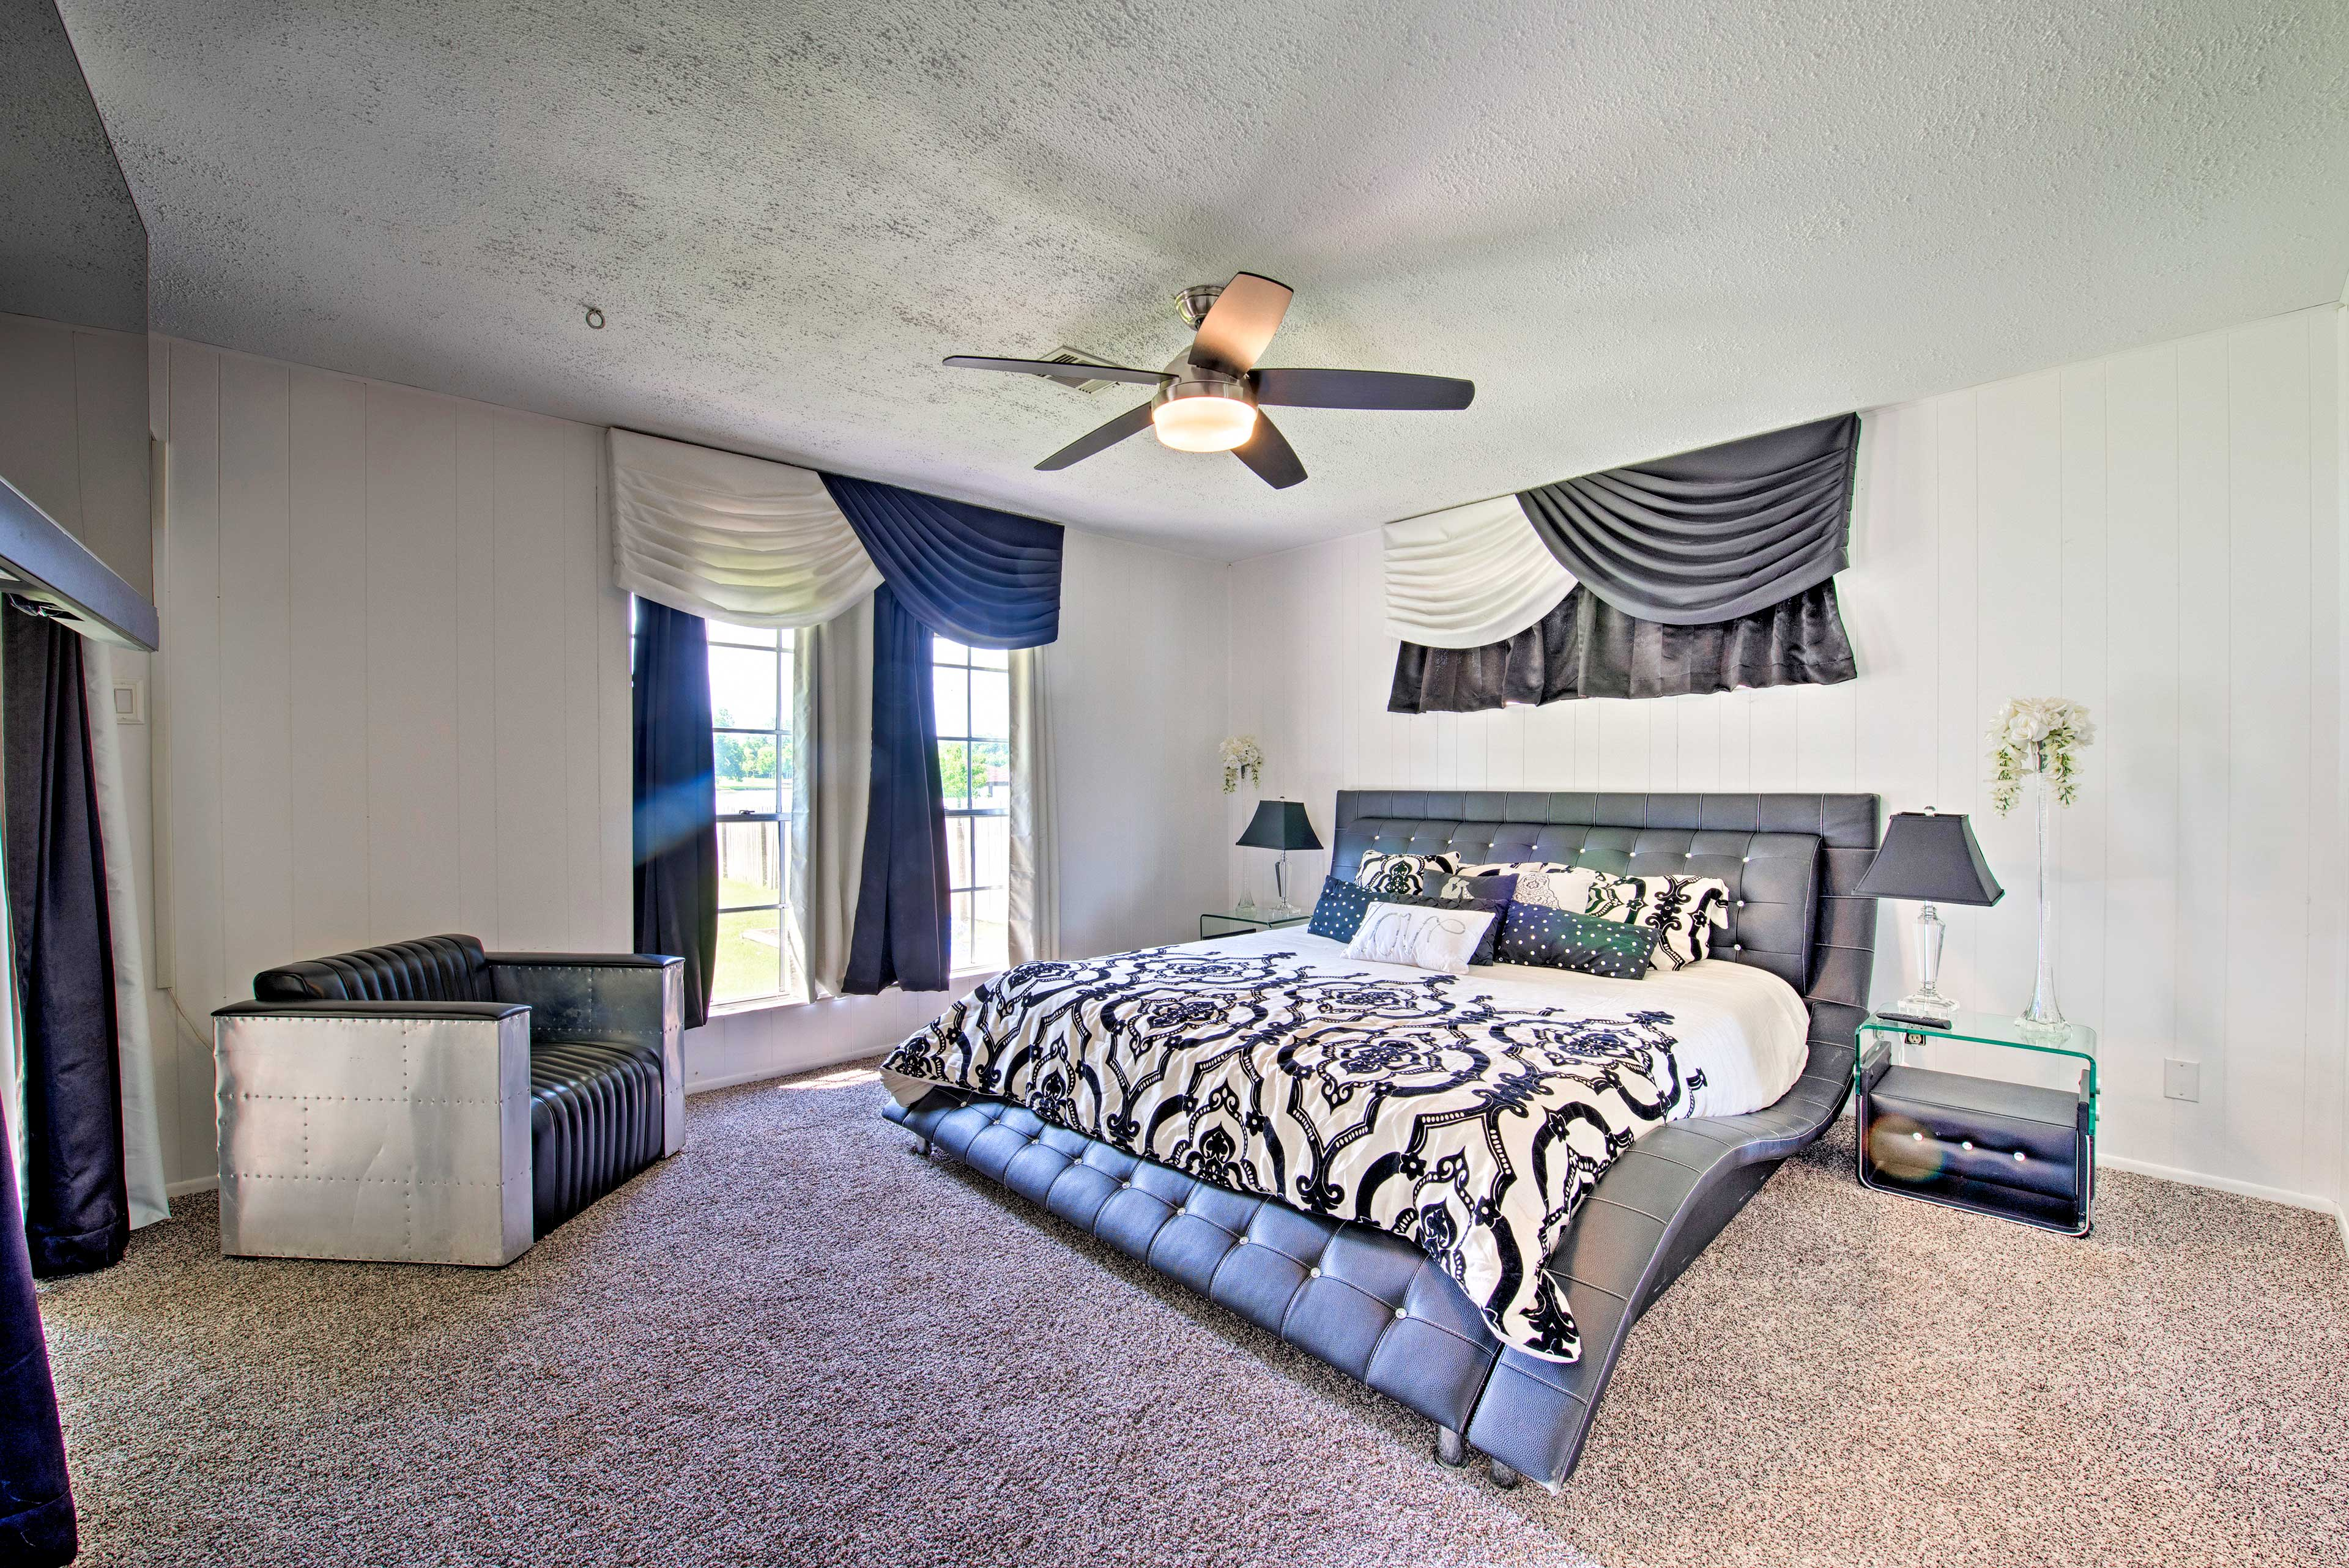 Find a king-sized bed in this bedroom.